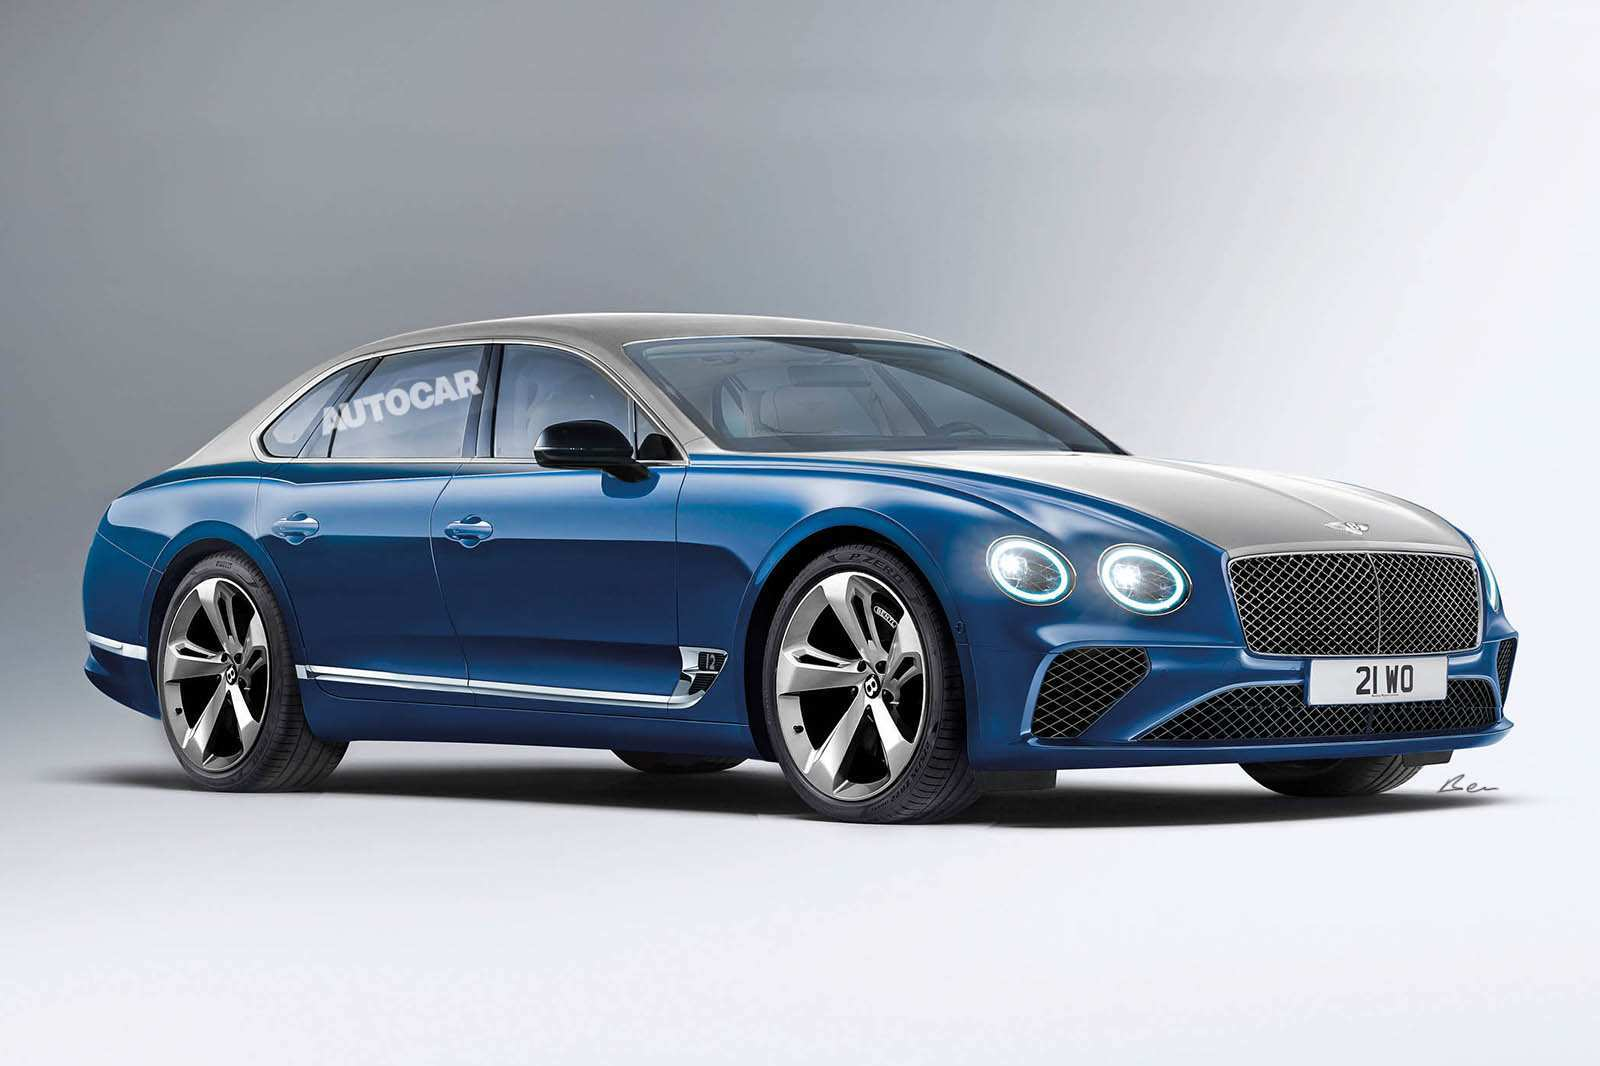 58 Best Review 2020 Bentley Continental GT Redesign and Concept for 2020 Bentley Continental GT